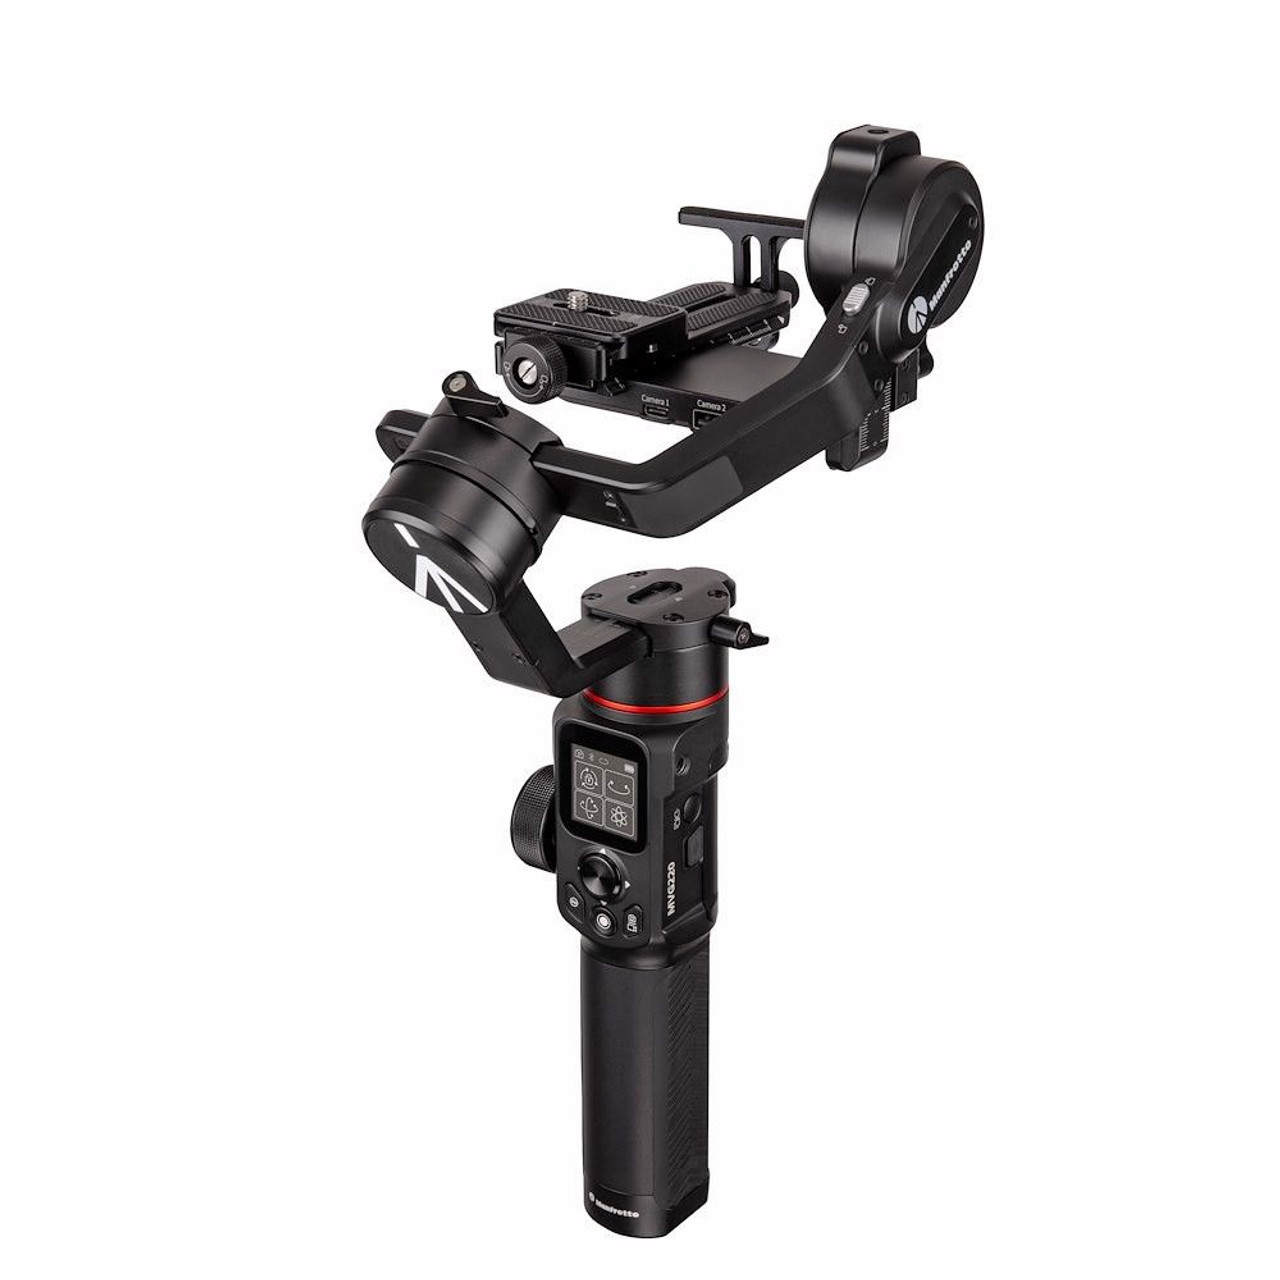 MANFROTTO 3-AXIS GIMBAL (MVG220)